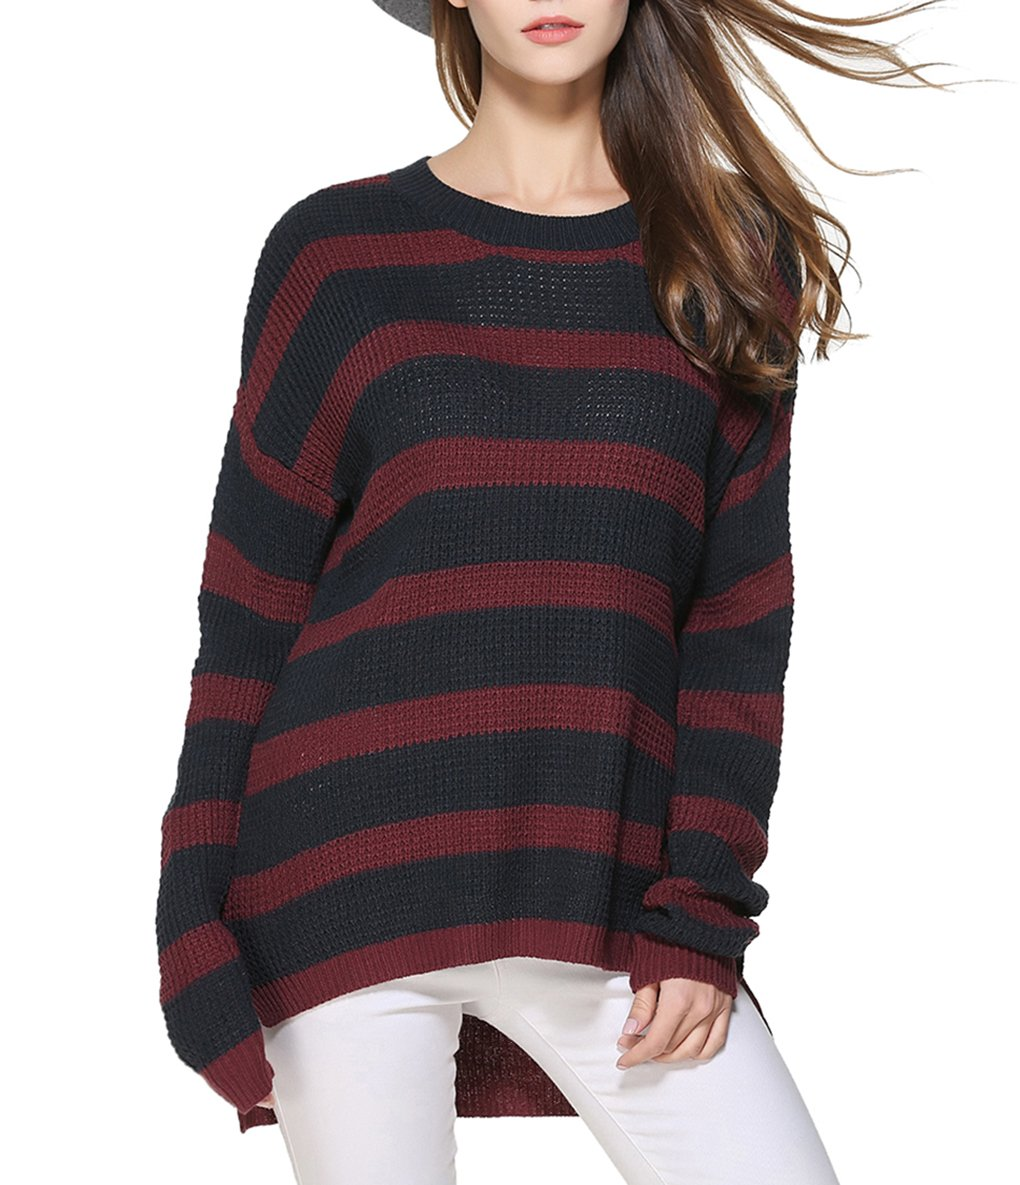 LemonGirl Women's Fashionable Long Sleeve Knitted Loose Pullover Sweater